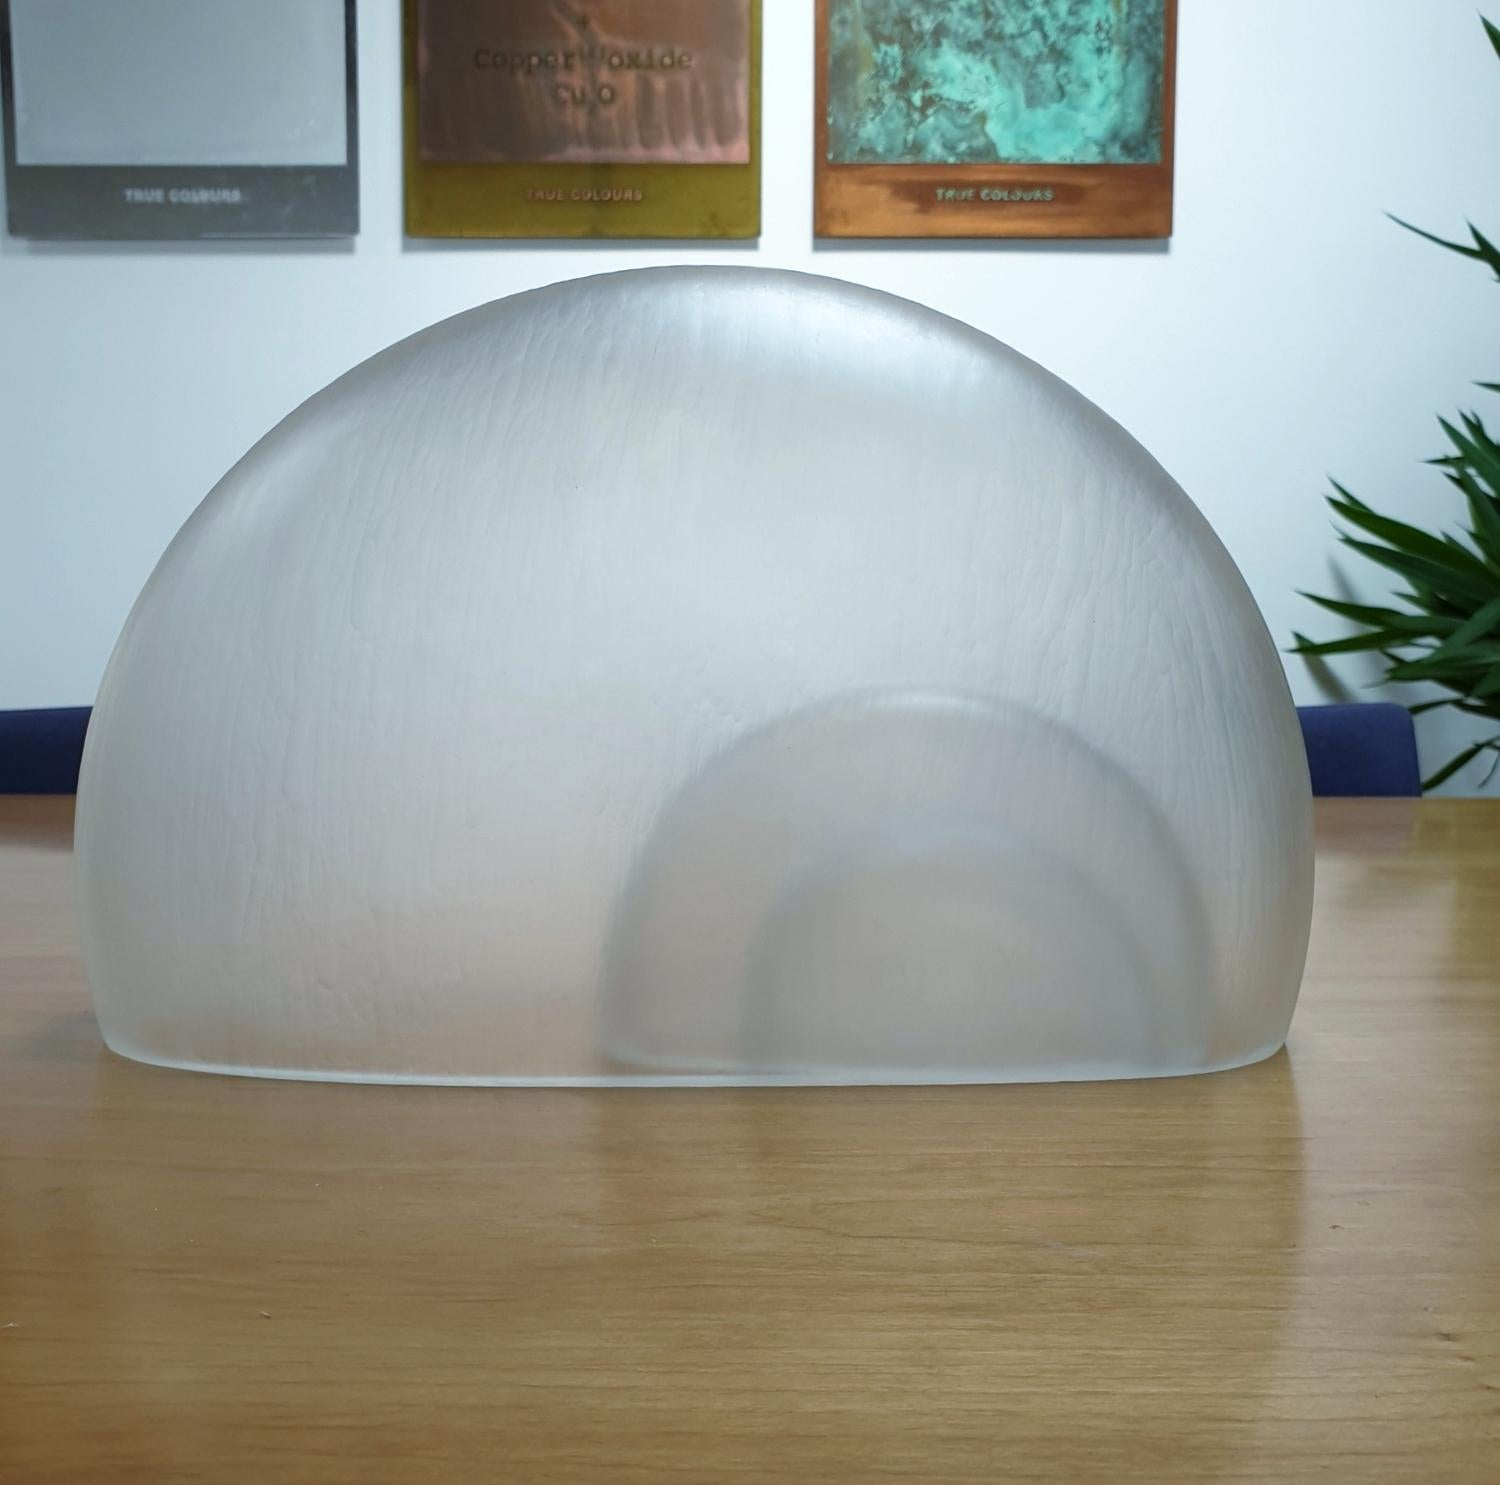 Memento Clear Cell - contemporary modern abstract glass sculpture